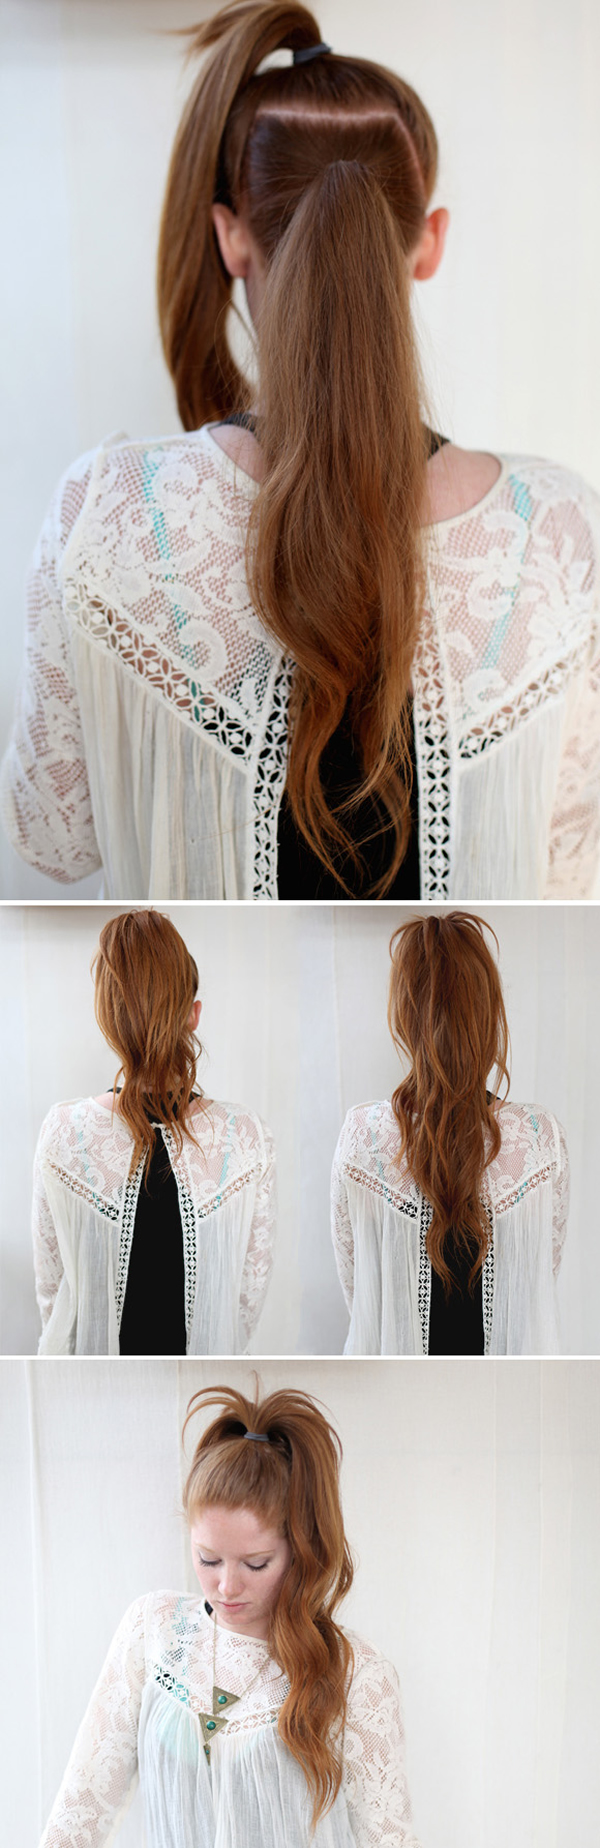 13 Five-Minute Hairstyles For School   stylequick